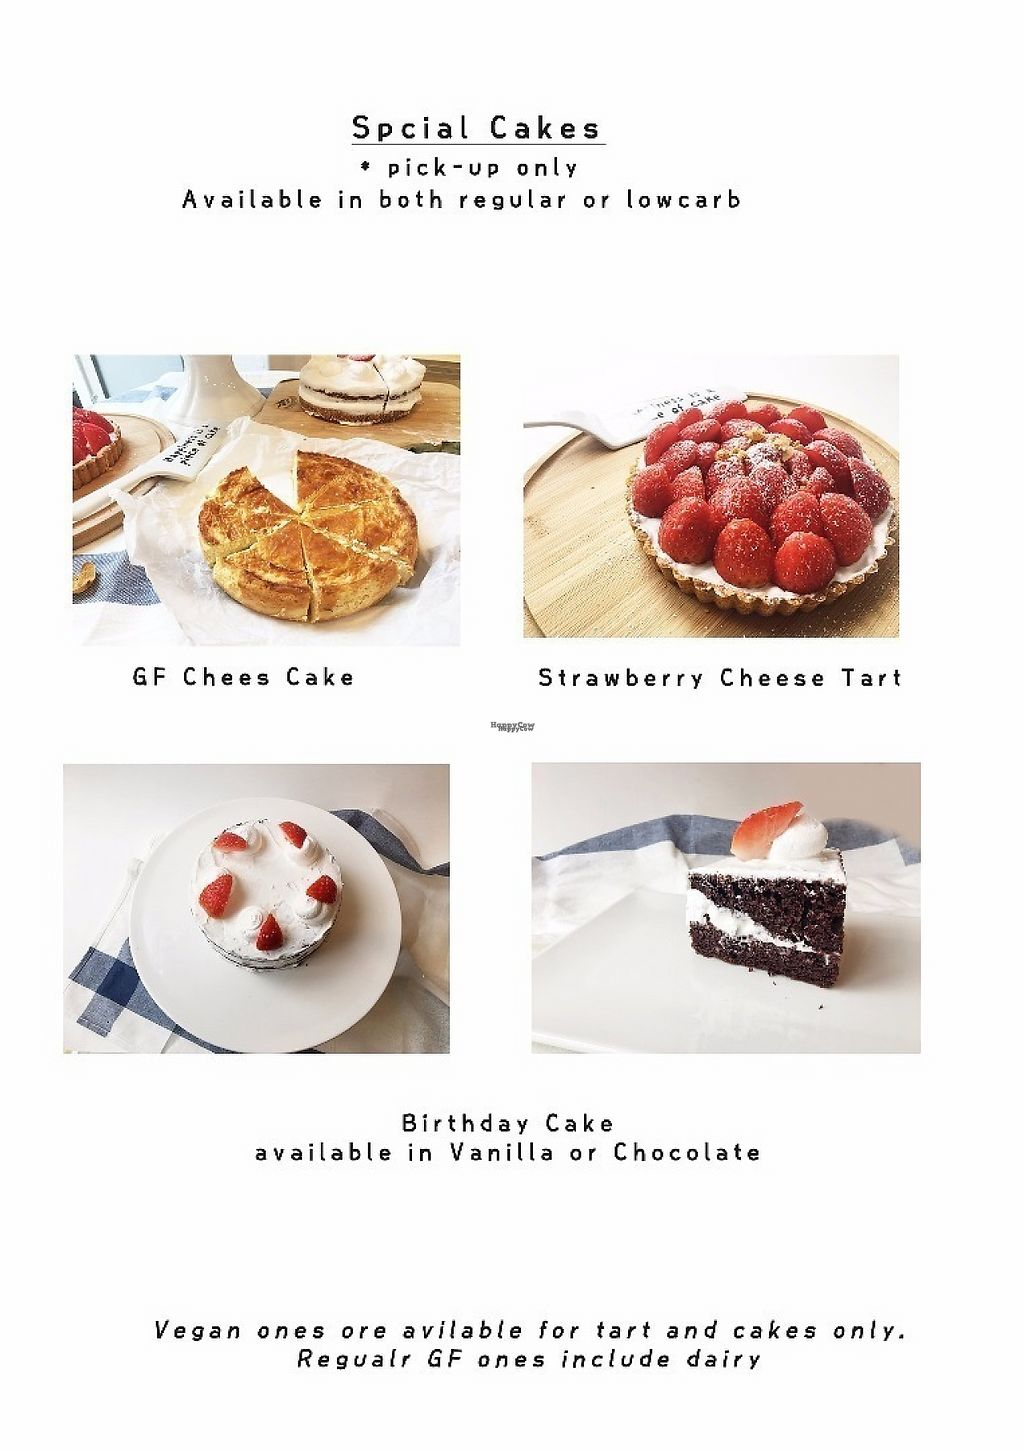 """Photo of Sunny's GF Sweets  by <a href=""""/members/profile/seongrye7"""">seongrye7</a> <br/>Tart and cake can be made vegan or vegetarian ! <br/> January 23, 2017  - <a href='/contact/abuse/image/85908/215236'>Report</a>"""